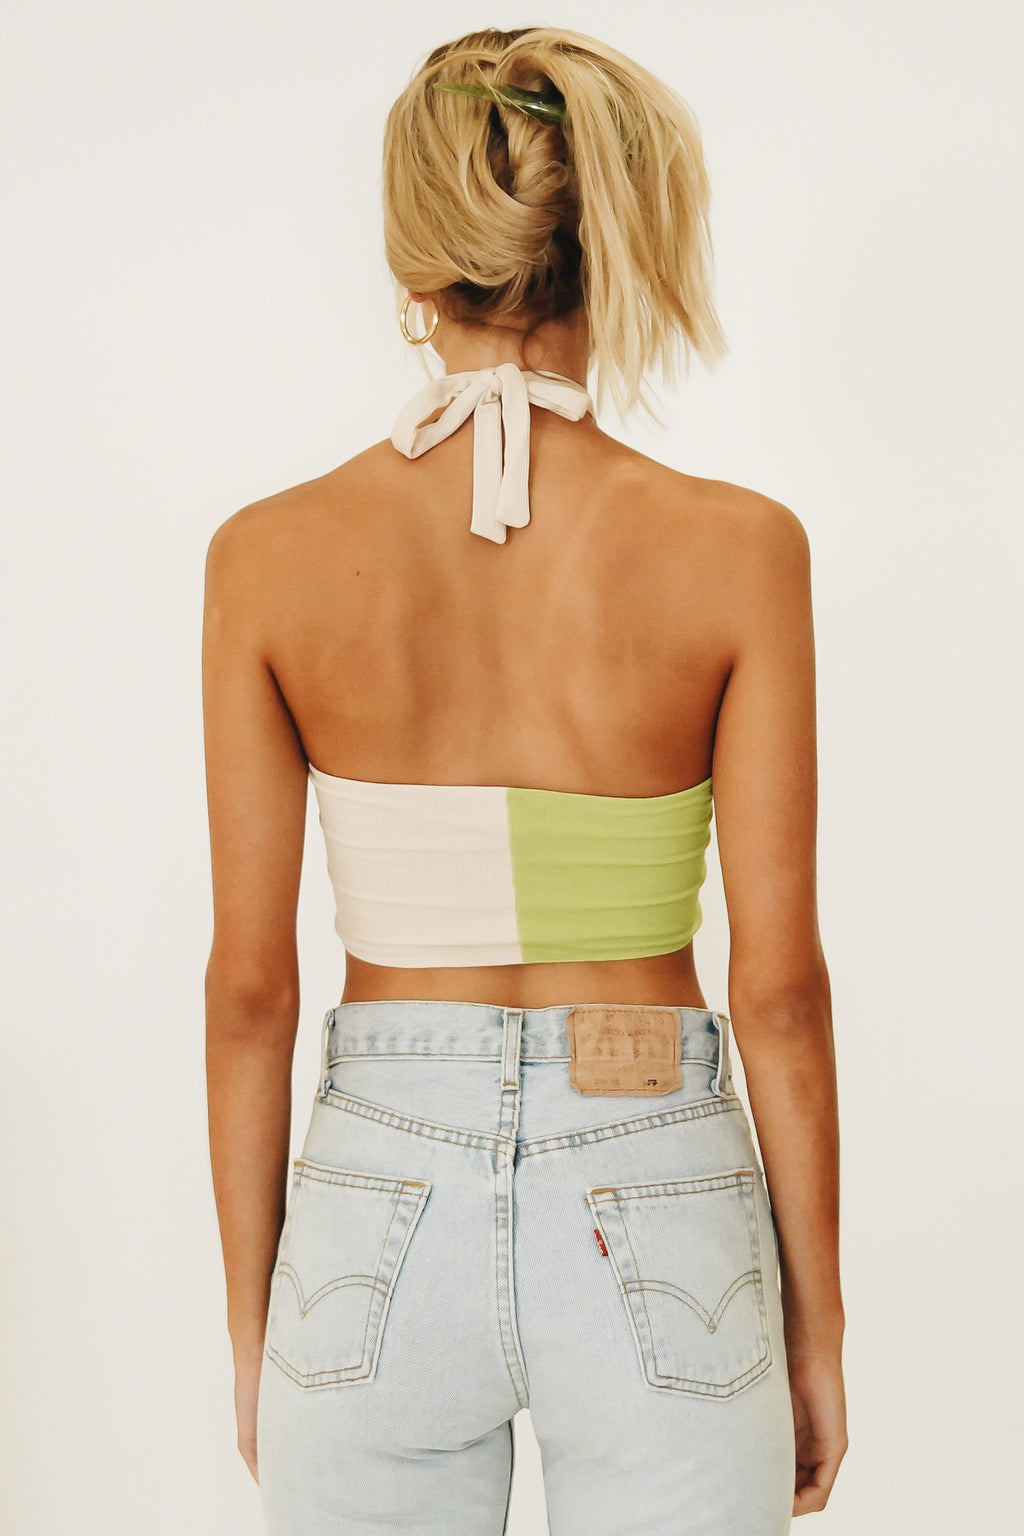 Cocktails All Night Ribbed Crop // Lime